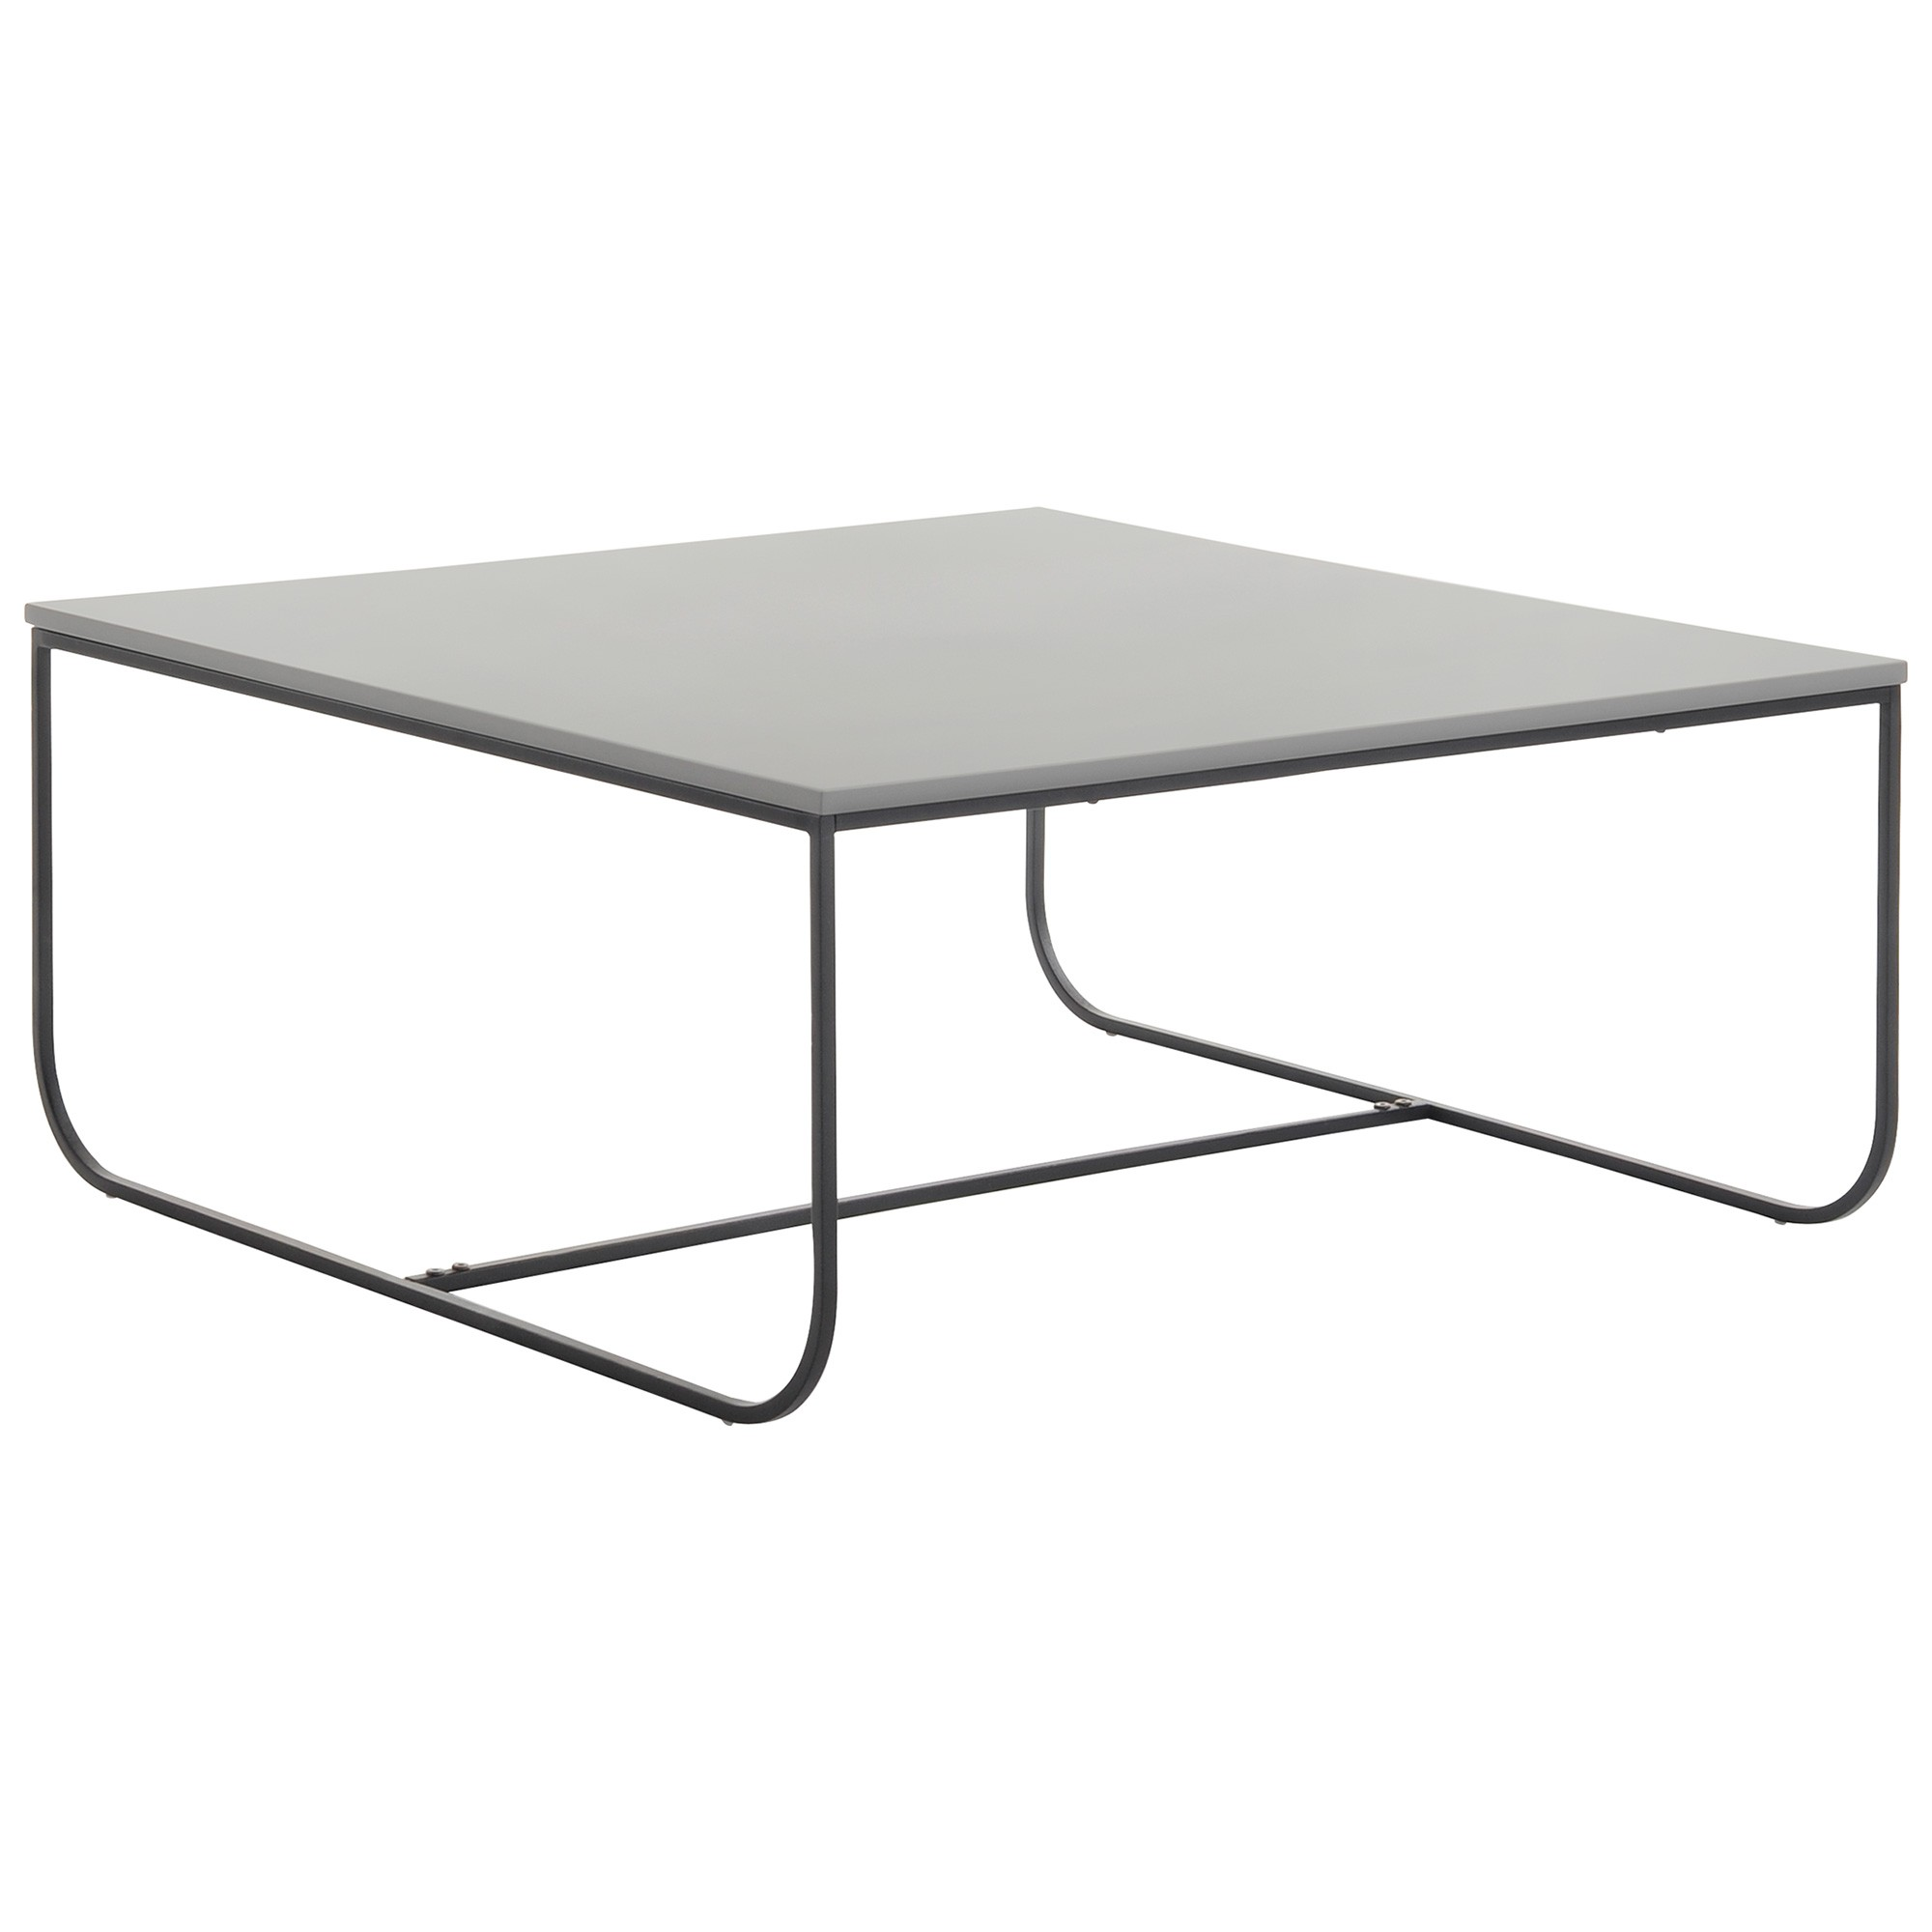 Marit Square Coffee Table, 90cm